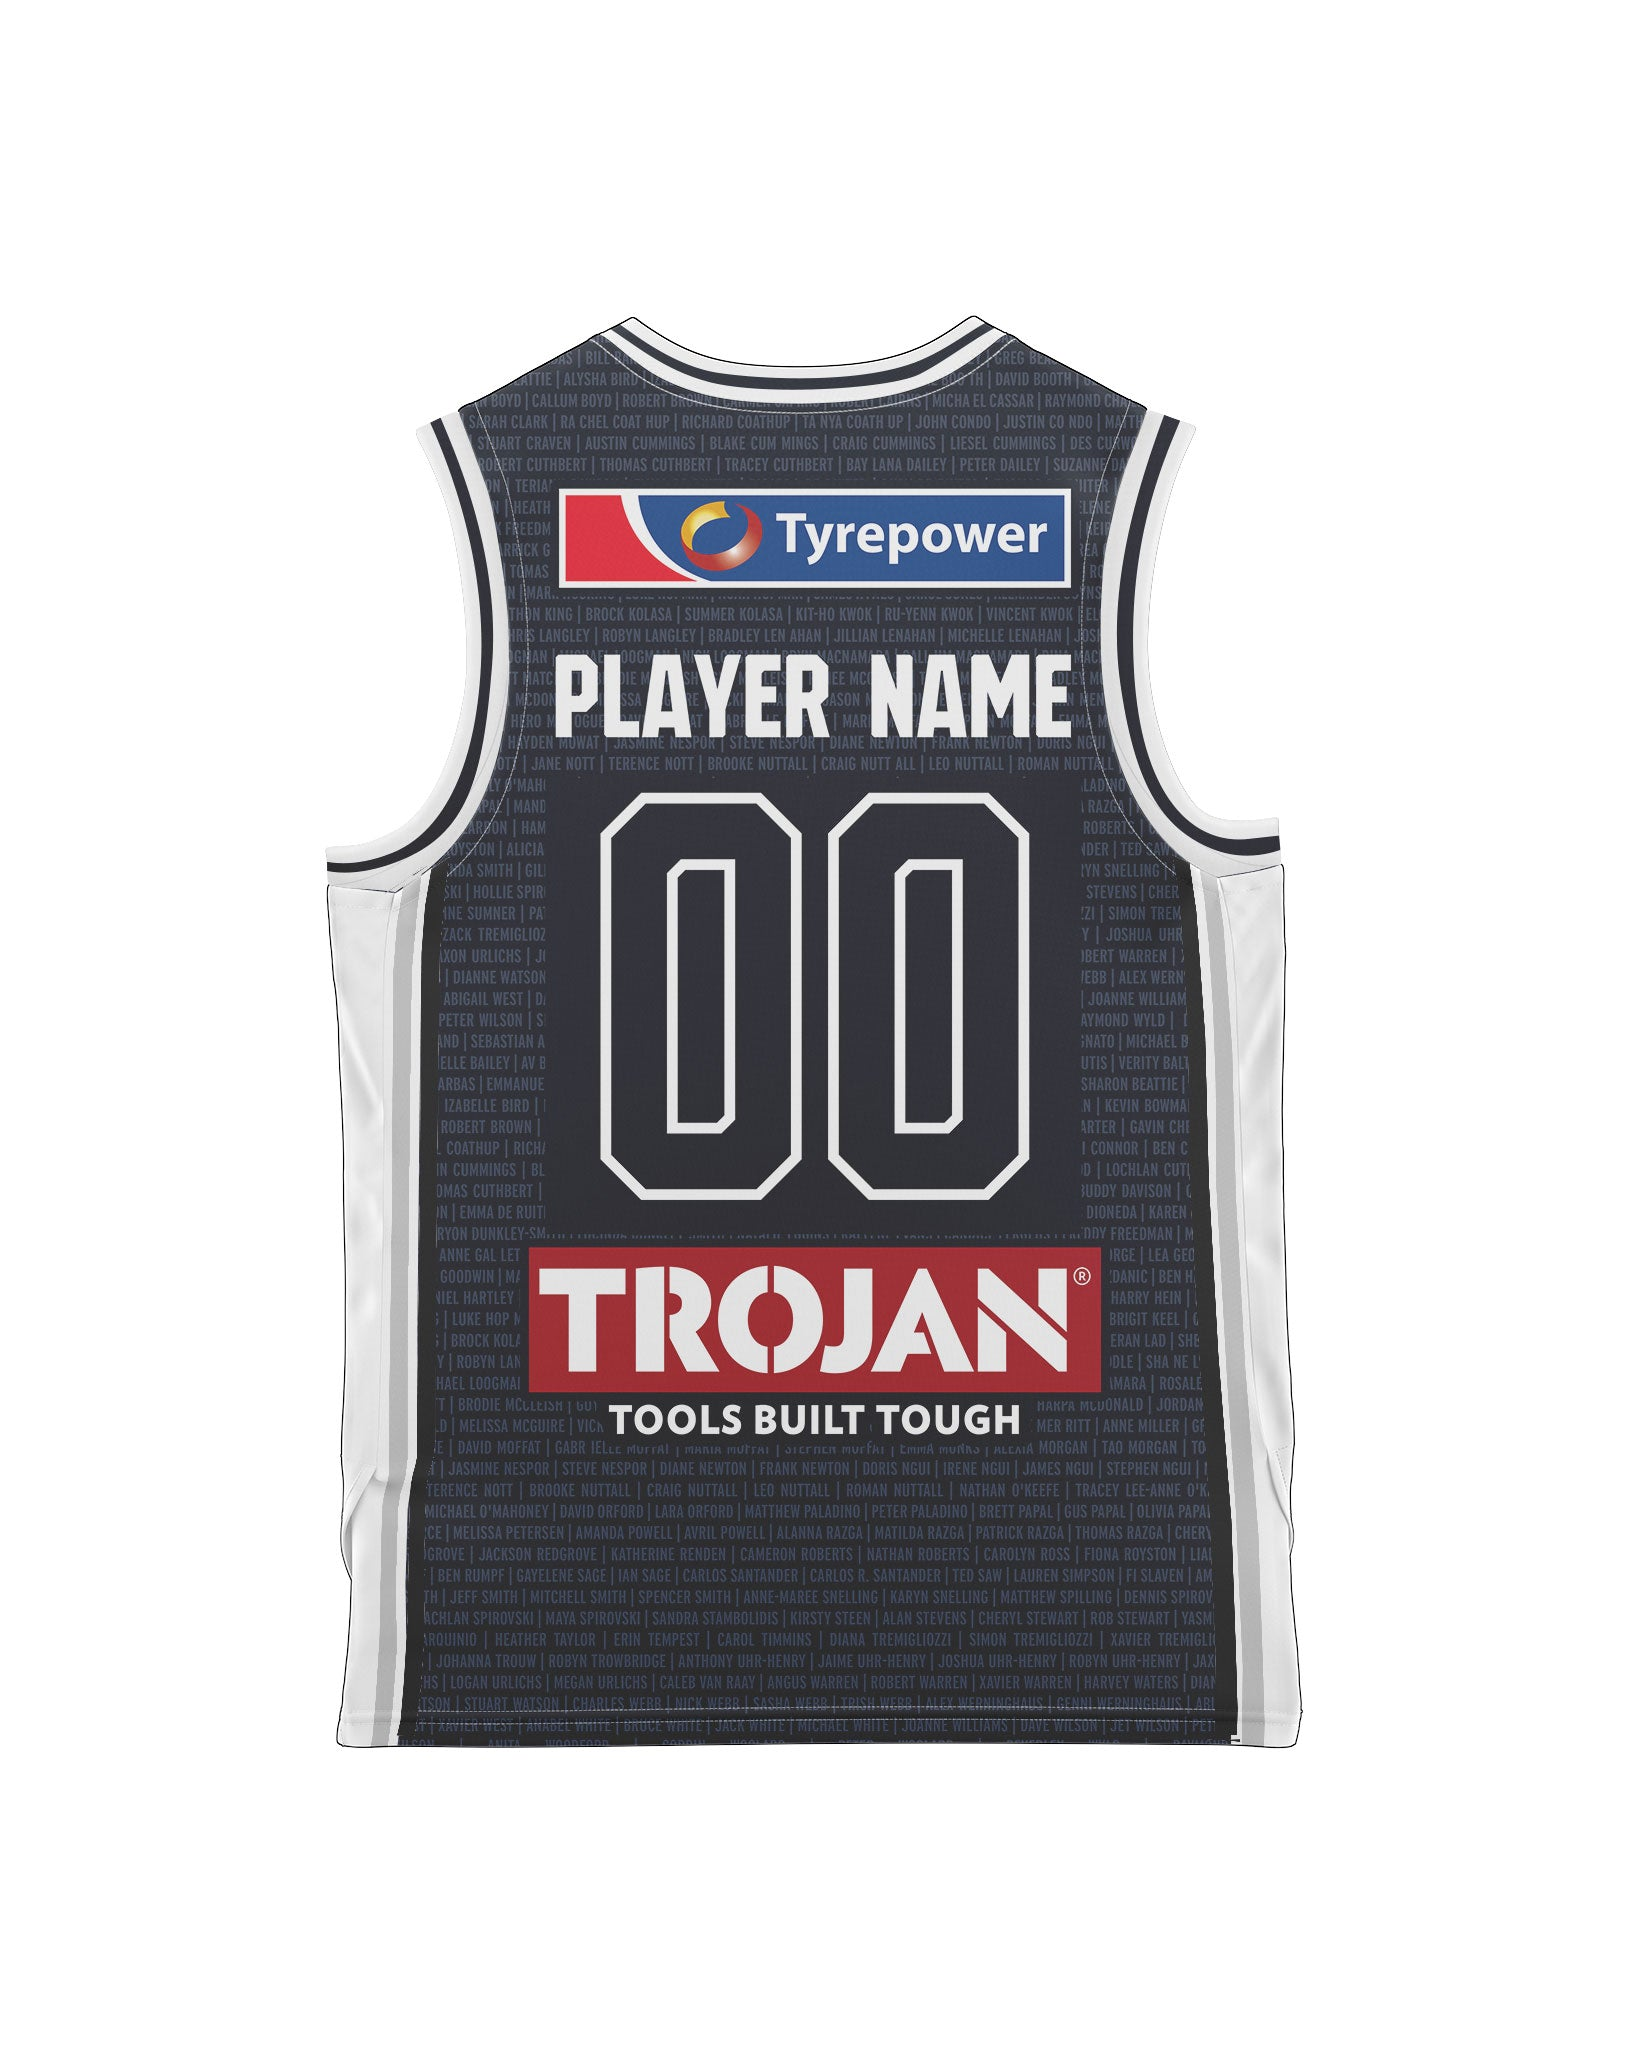 Melbourne United 20/21 Youth Authentic Heritage Jersey - Other Players